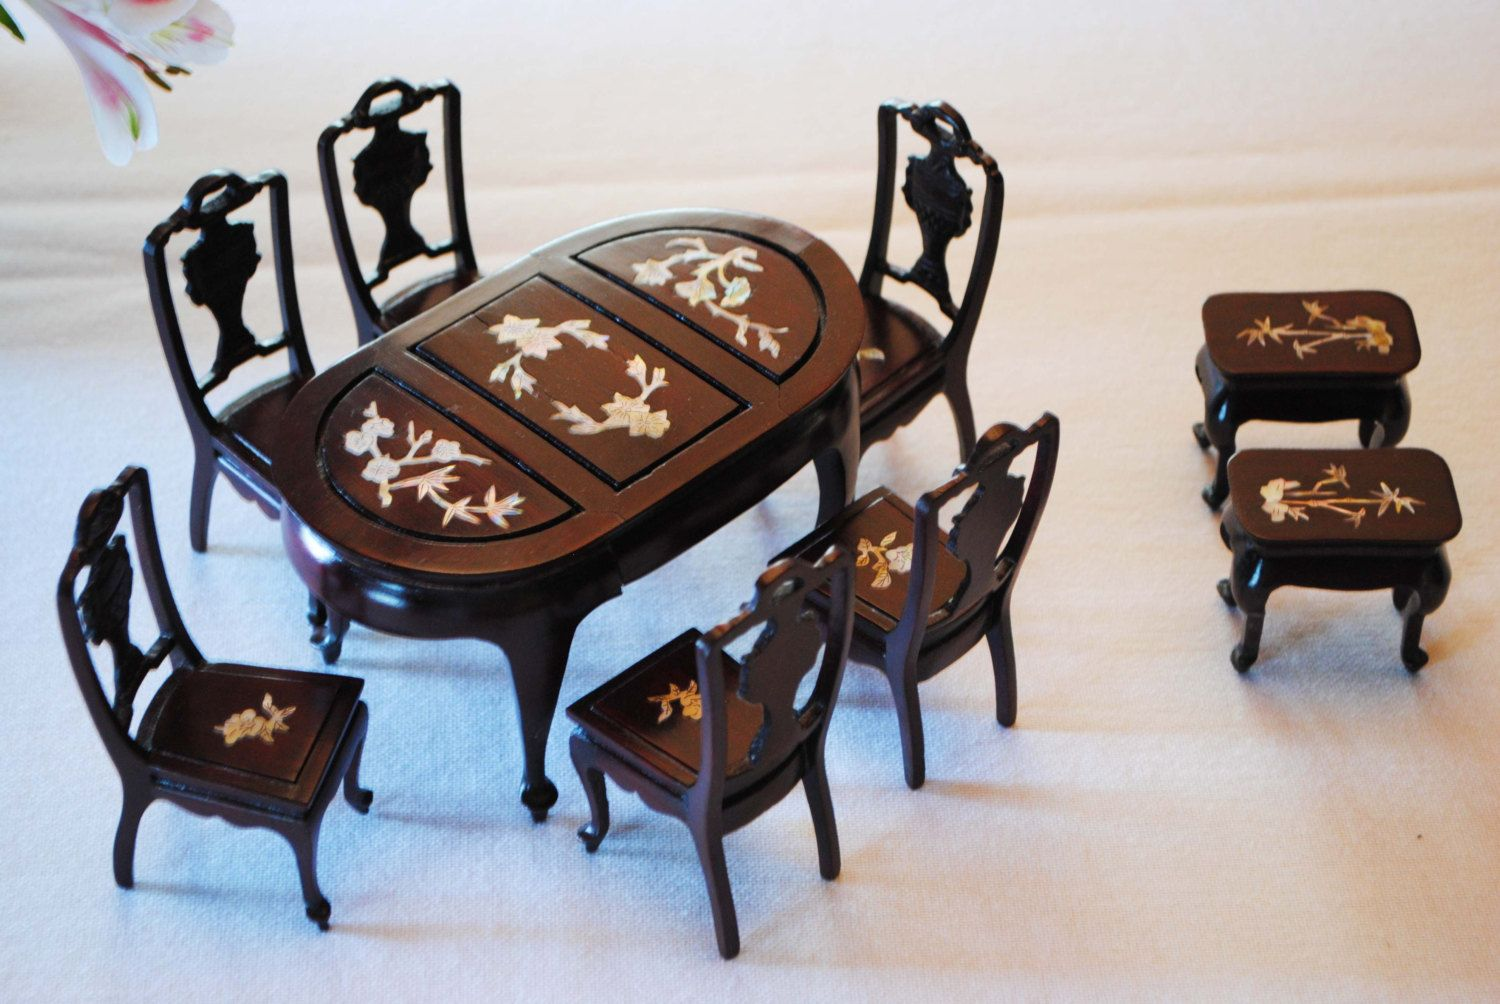 Vintage Rosewood Mother of Pearl Inlay Armchair Dollhouse 1:12 Miniature